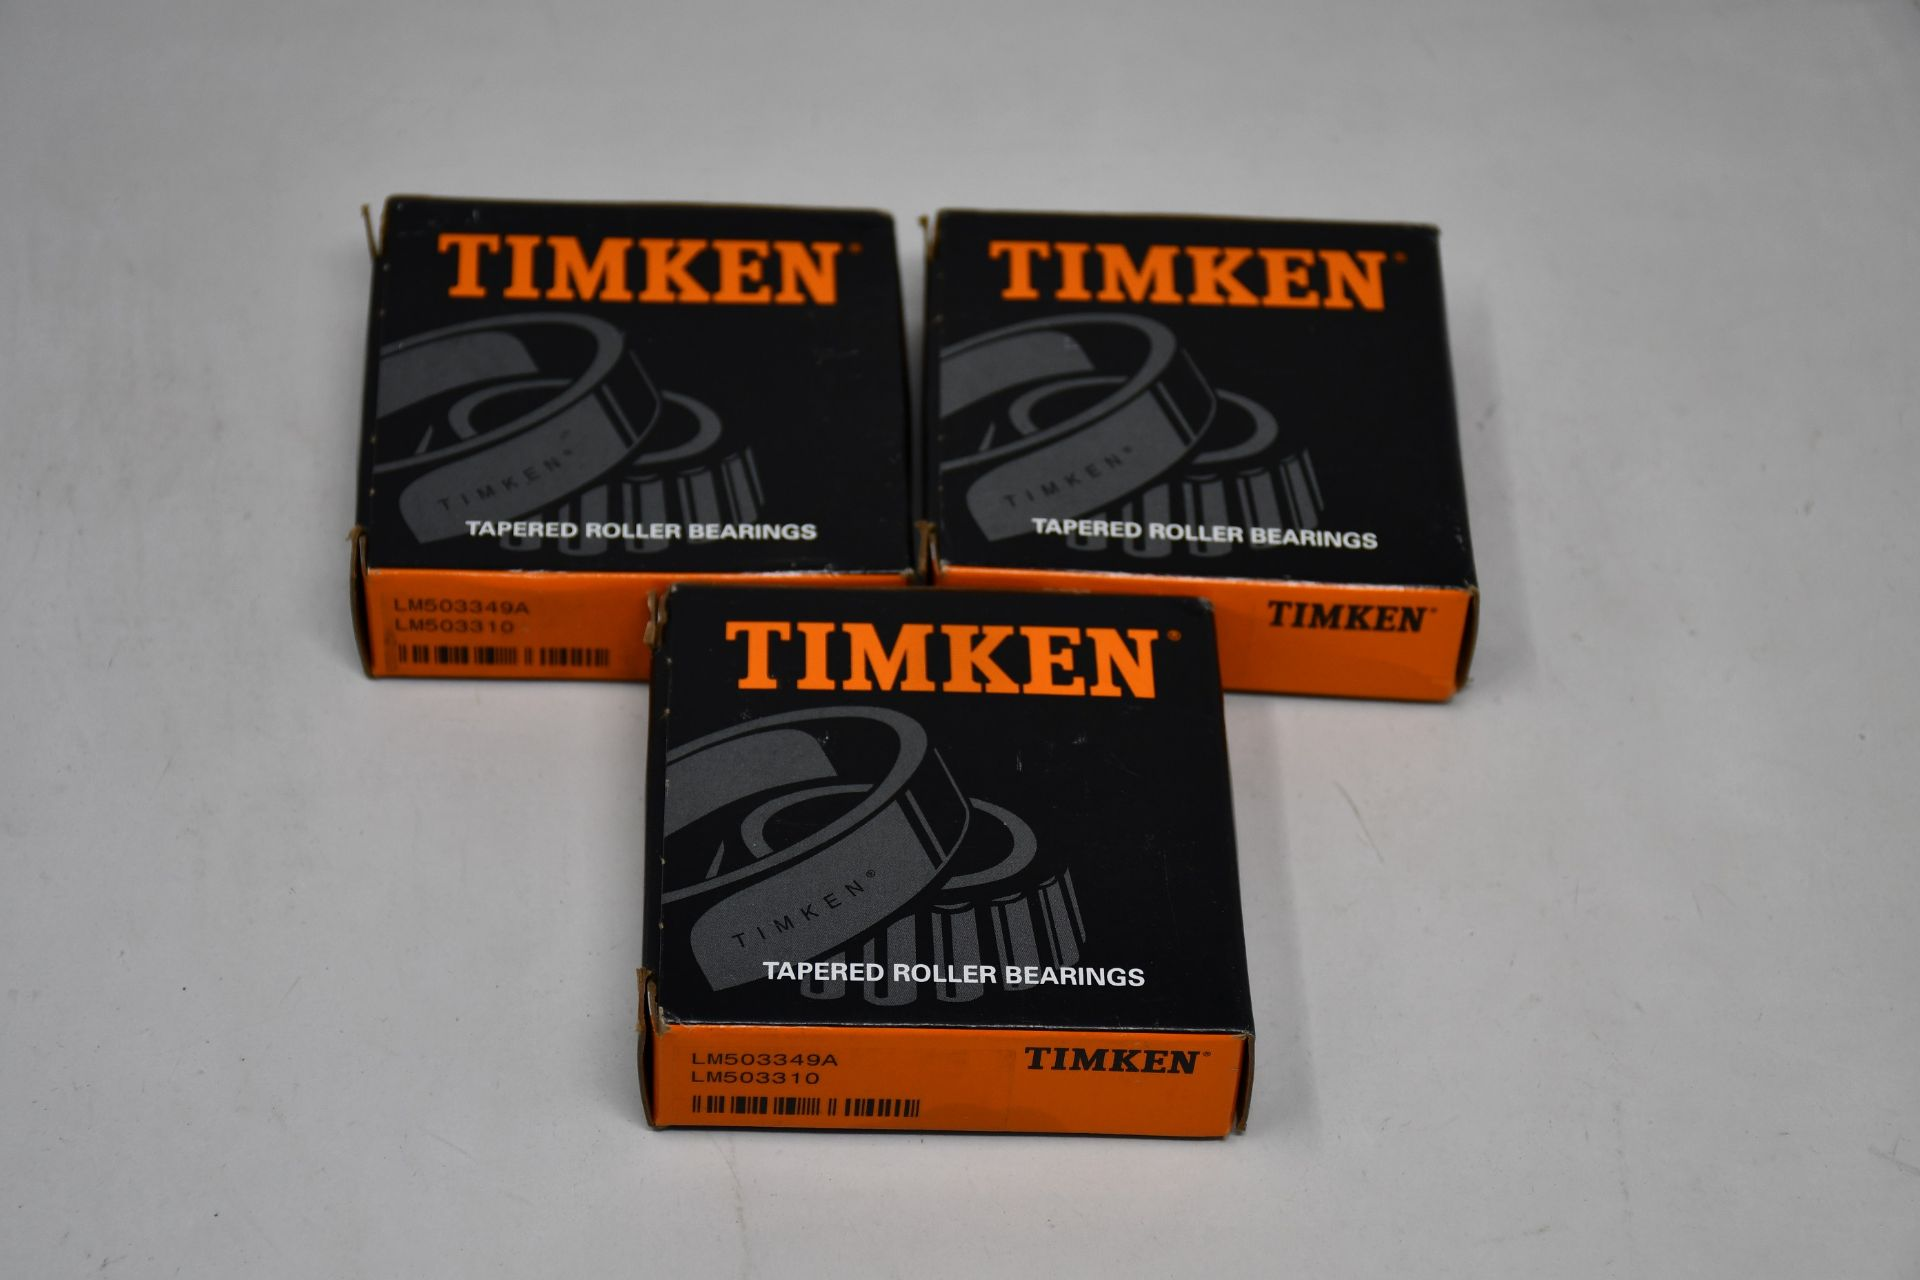 Twenty five boxed as new Timken Tapered Roller Bearing (LM503349A/LM503310).